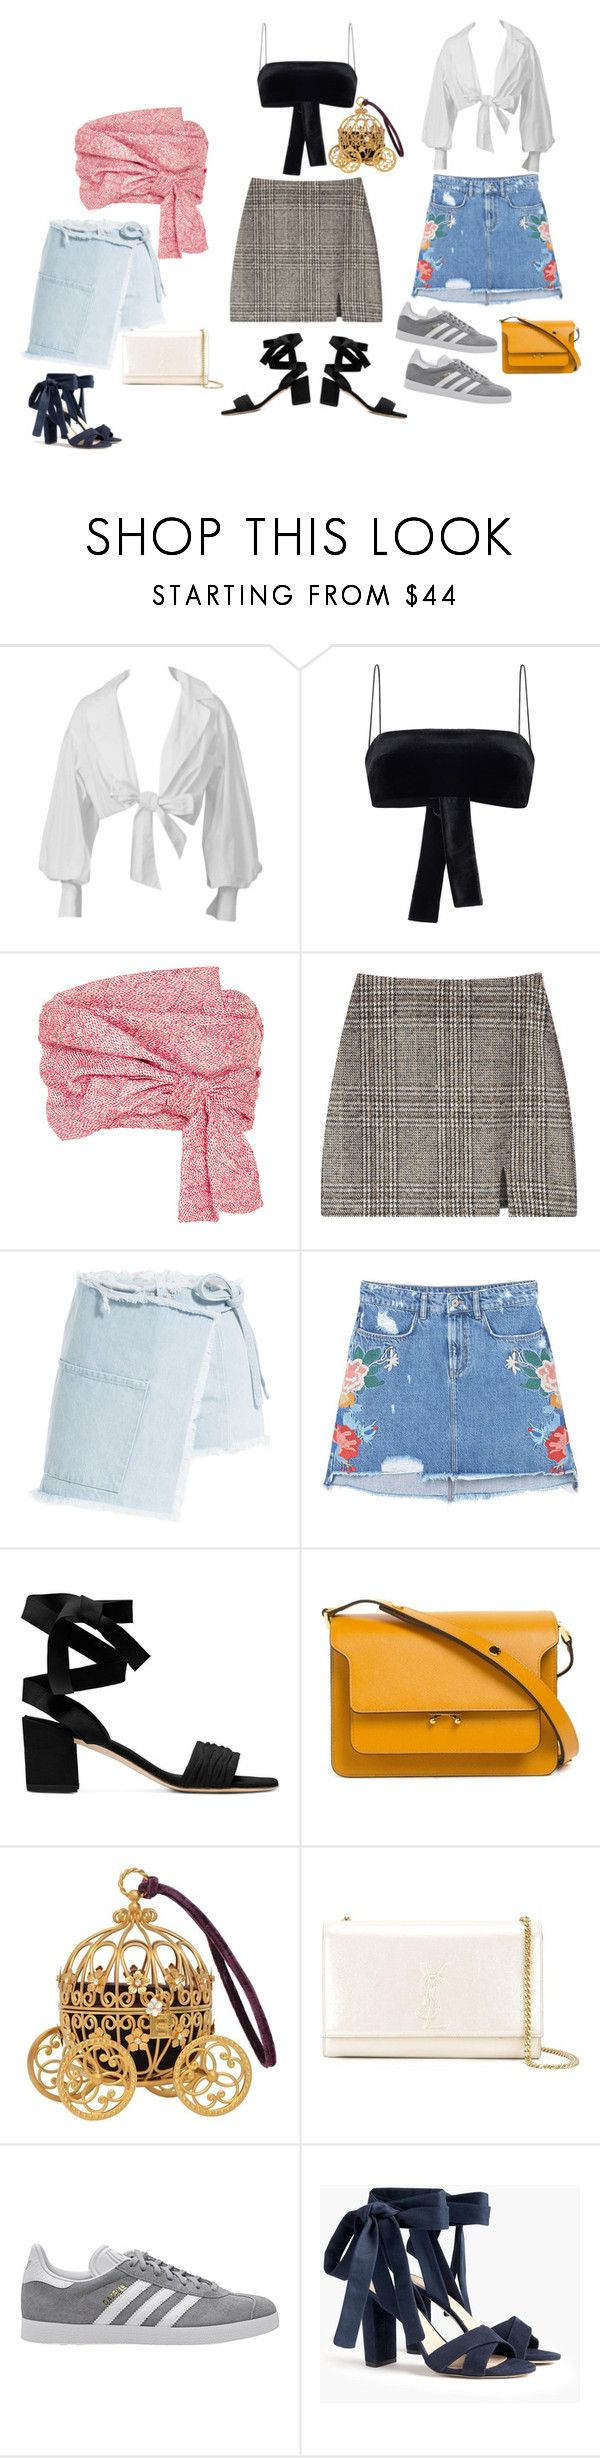 """""""Untitled #11"""" by andrea-noches on Polyvore featuring Montana, Rasario, Adeam, Sandy Liang, MANGO, Marni, Yves Saint Laurent, adidas Originals and J.Crew"""